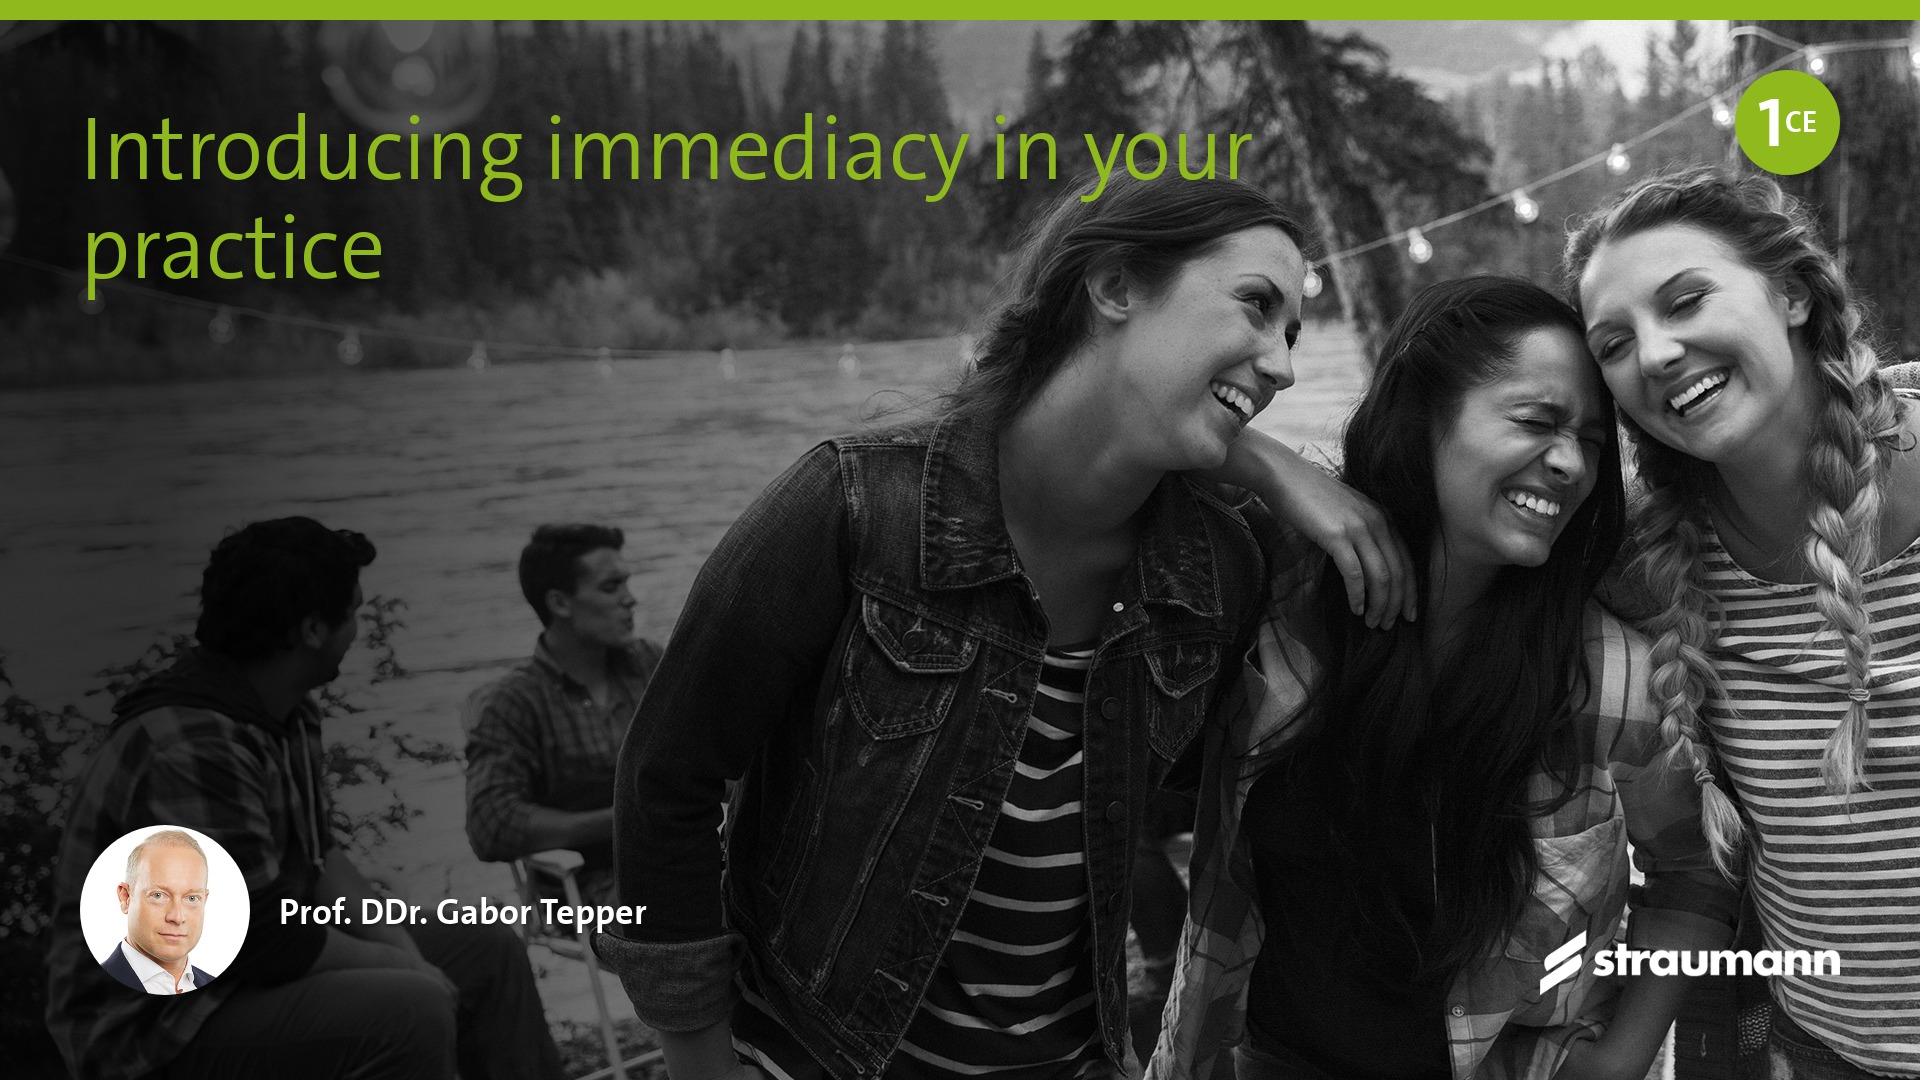 Introducing immediacy in your practice